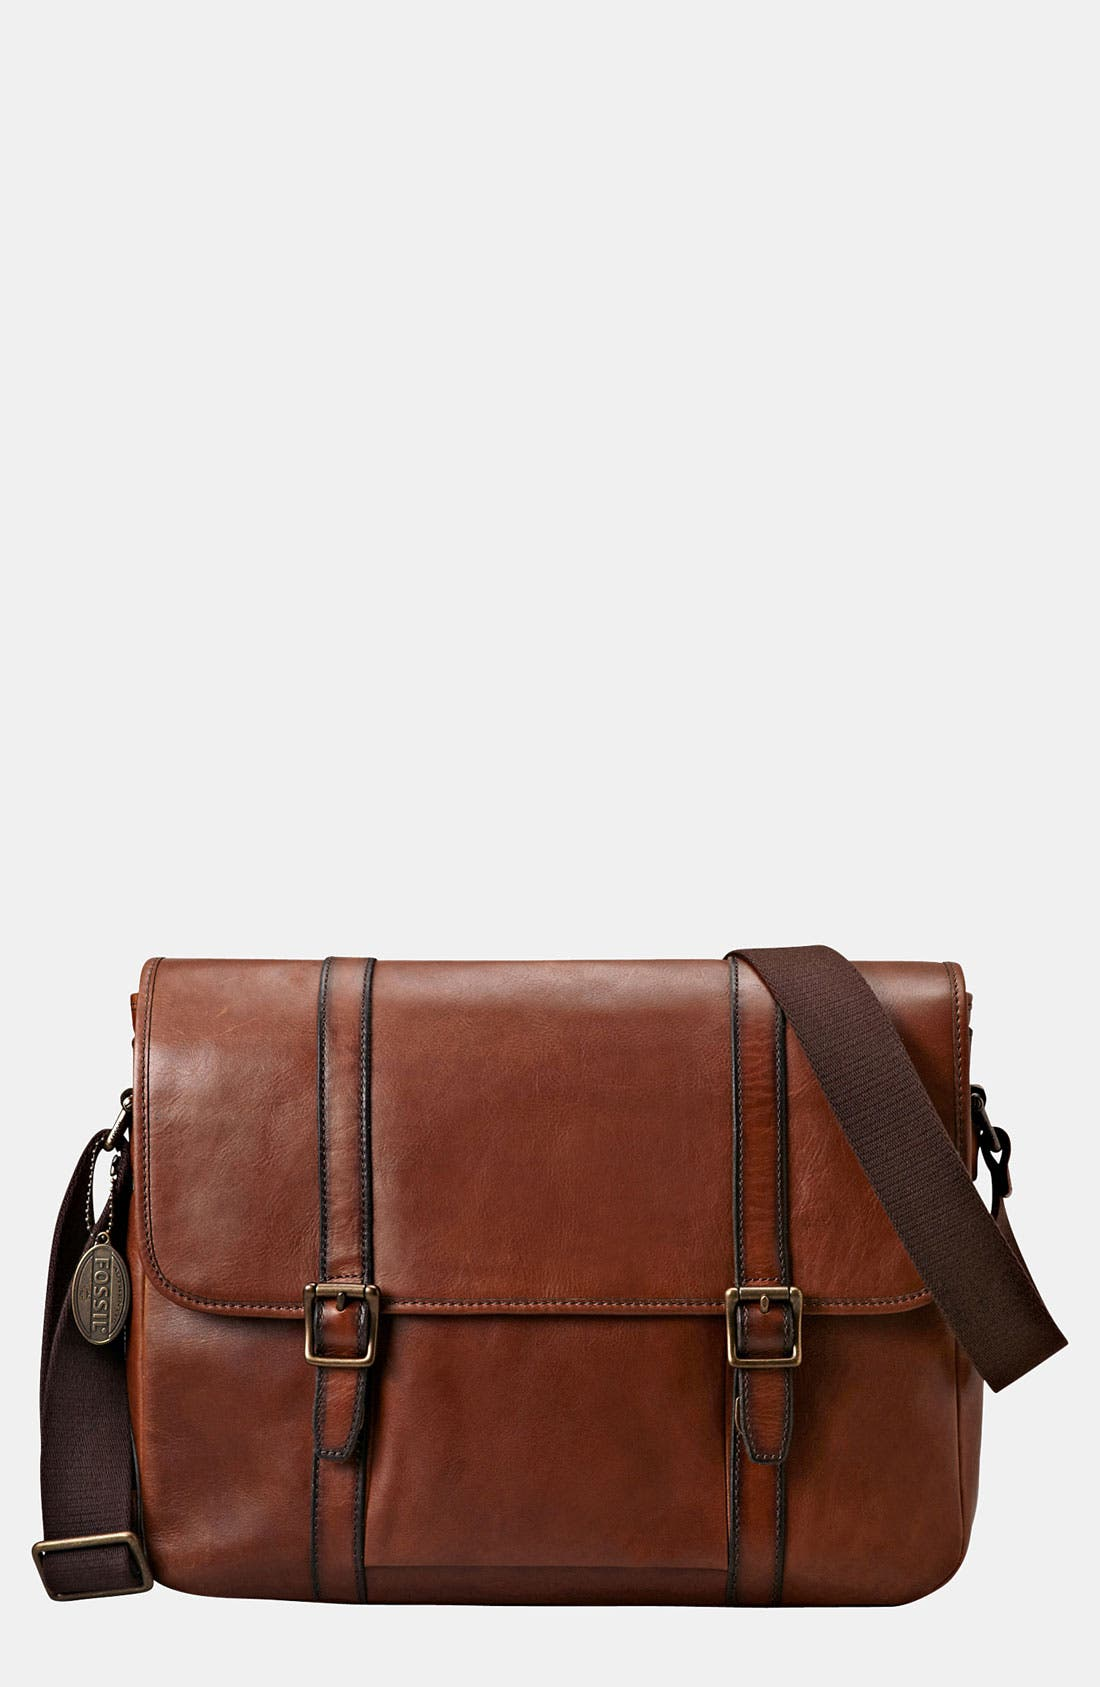 Alternate Image 1 Selected - Fossil 'Estate' Leather Messenger Bag